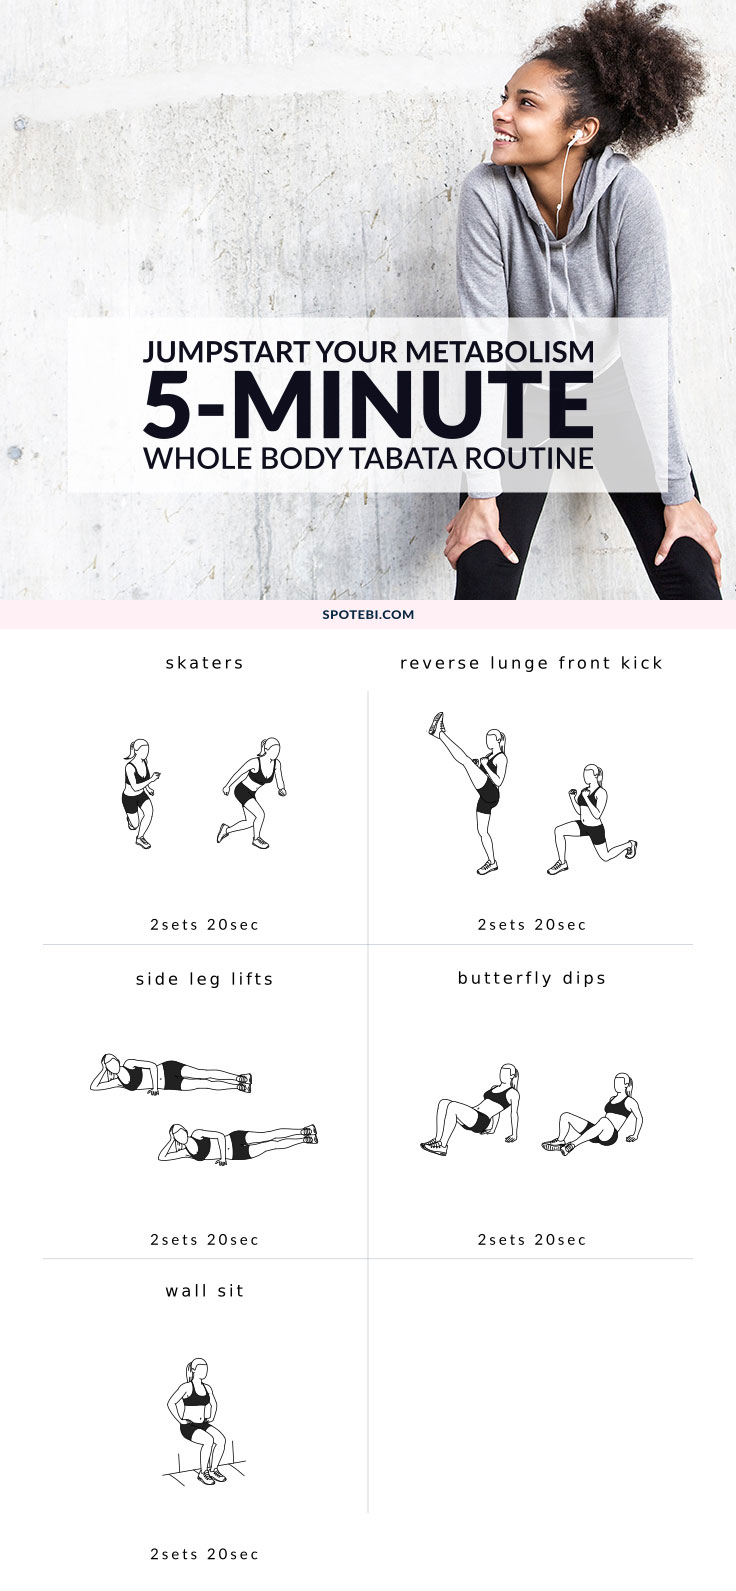 Get your sweat on and work your whole body with this Tabata inspired 5-minute workout! A time-saving workout session with just 5 moves that'll get your heart rate up and give your metabolism the jumpstart it needs to shed that extra weight! https://www.spotebi.com/workout-routines/full-body-5-minute-workout-jumpstart-metabolism/